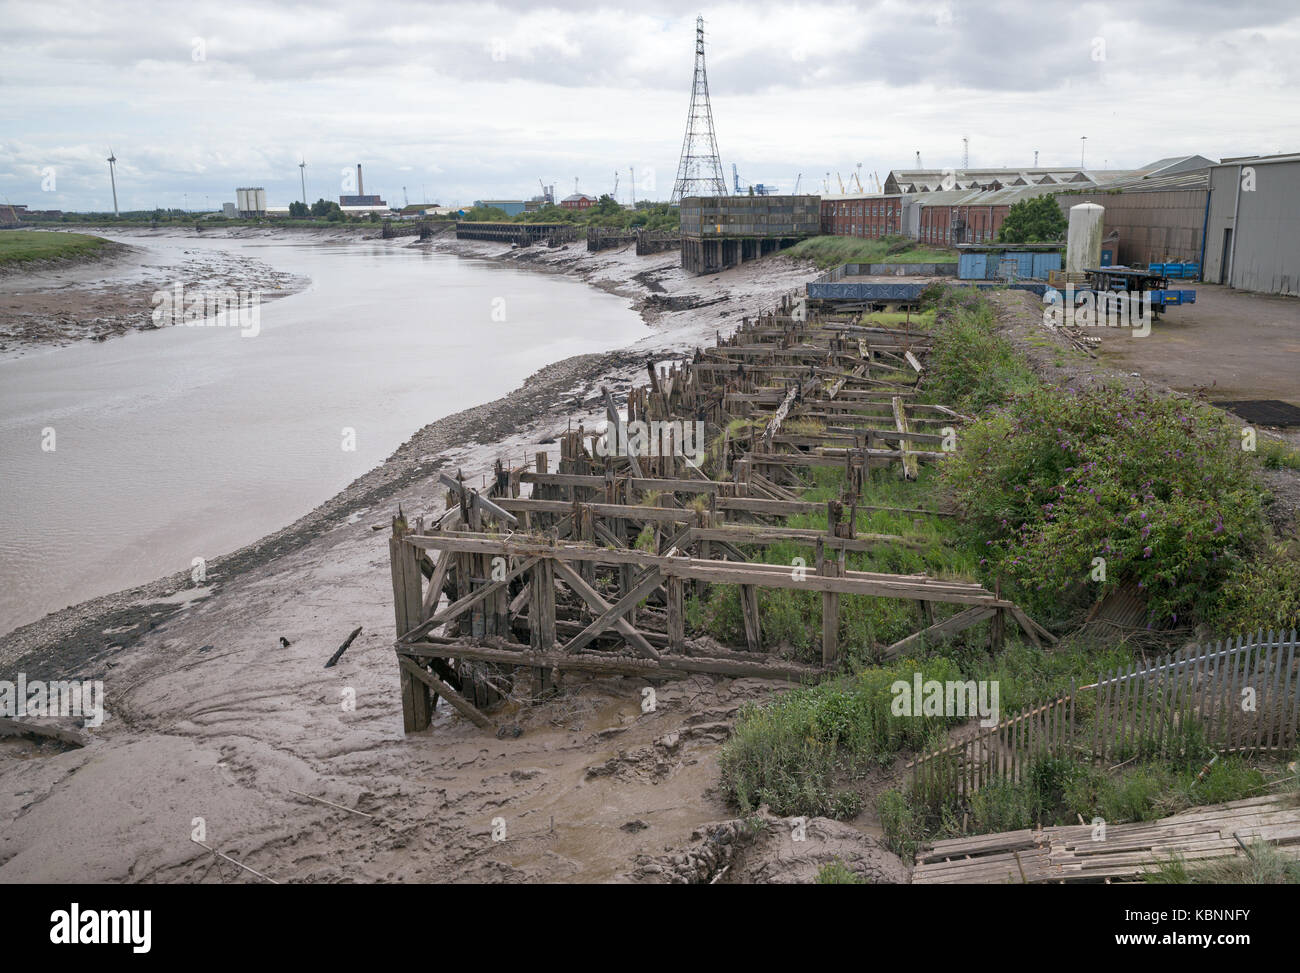 View from Newport Transporter Bridge downstream along lower reaches of River Usk with disused and rotting wooden - Stock Image